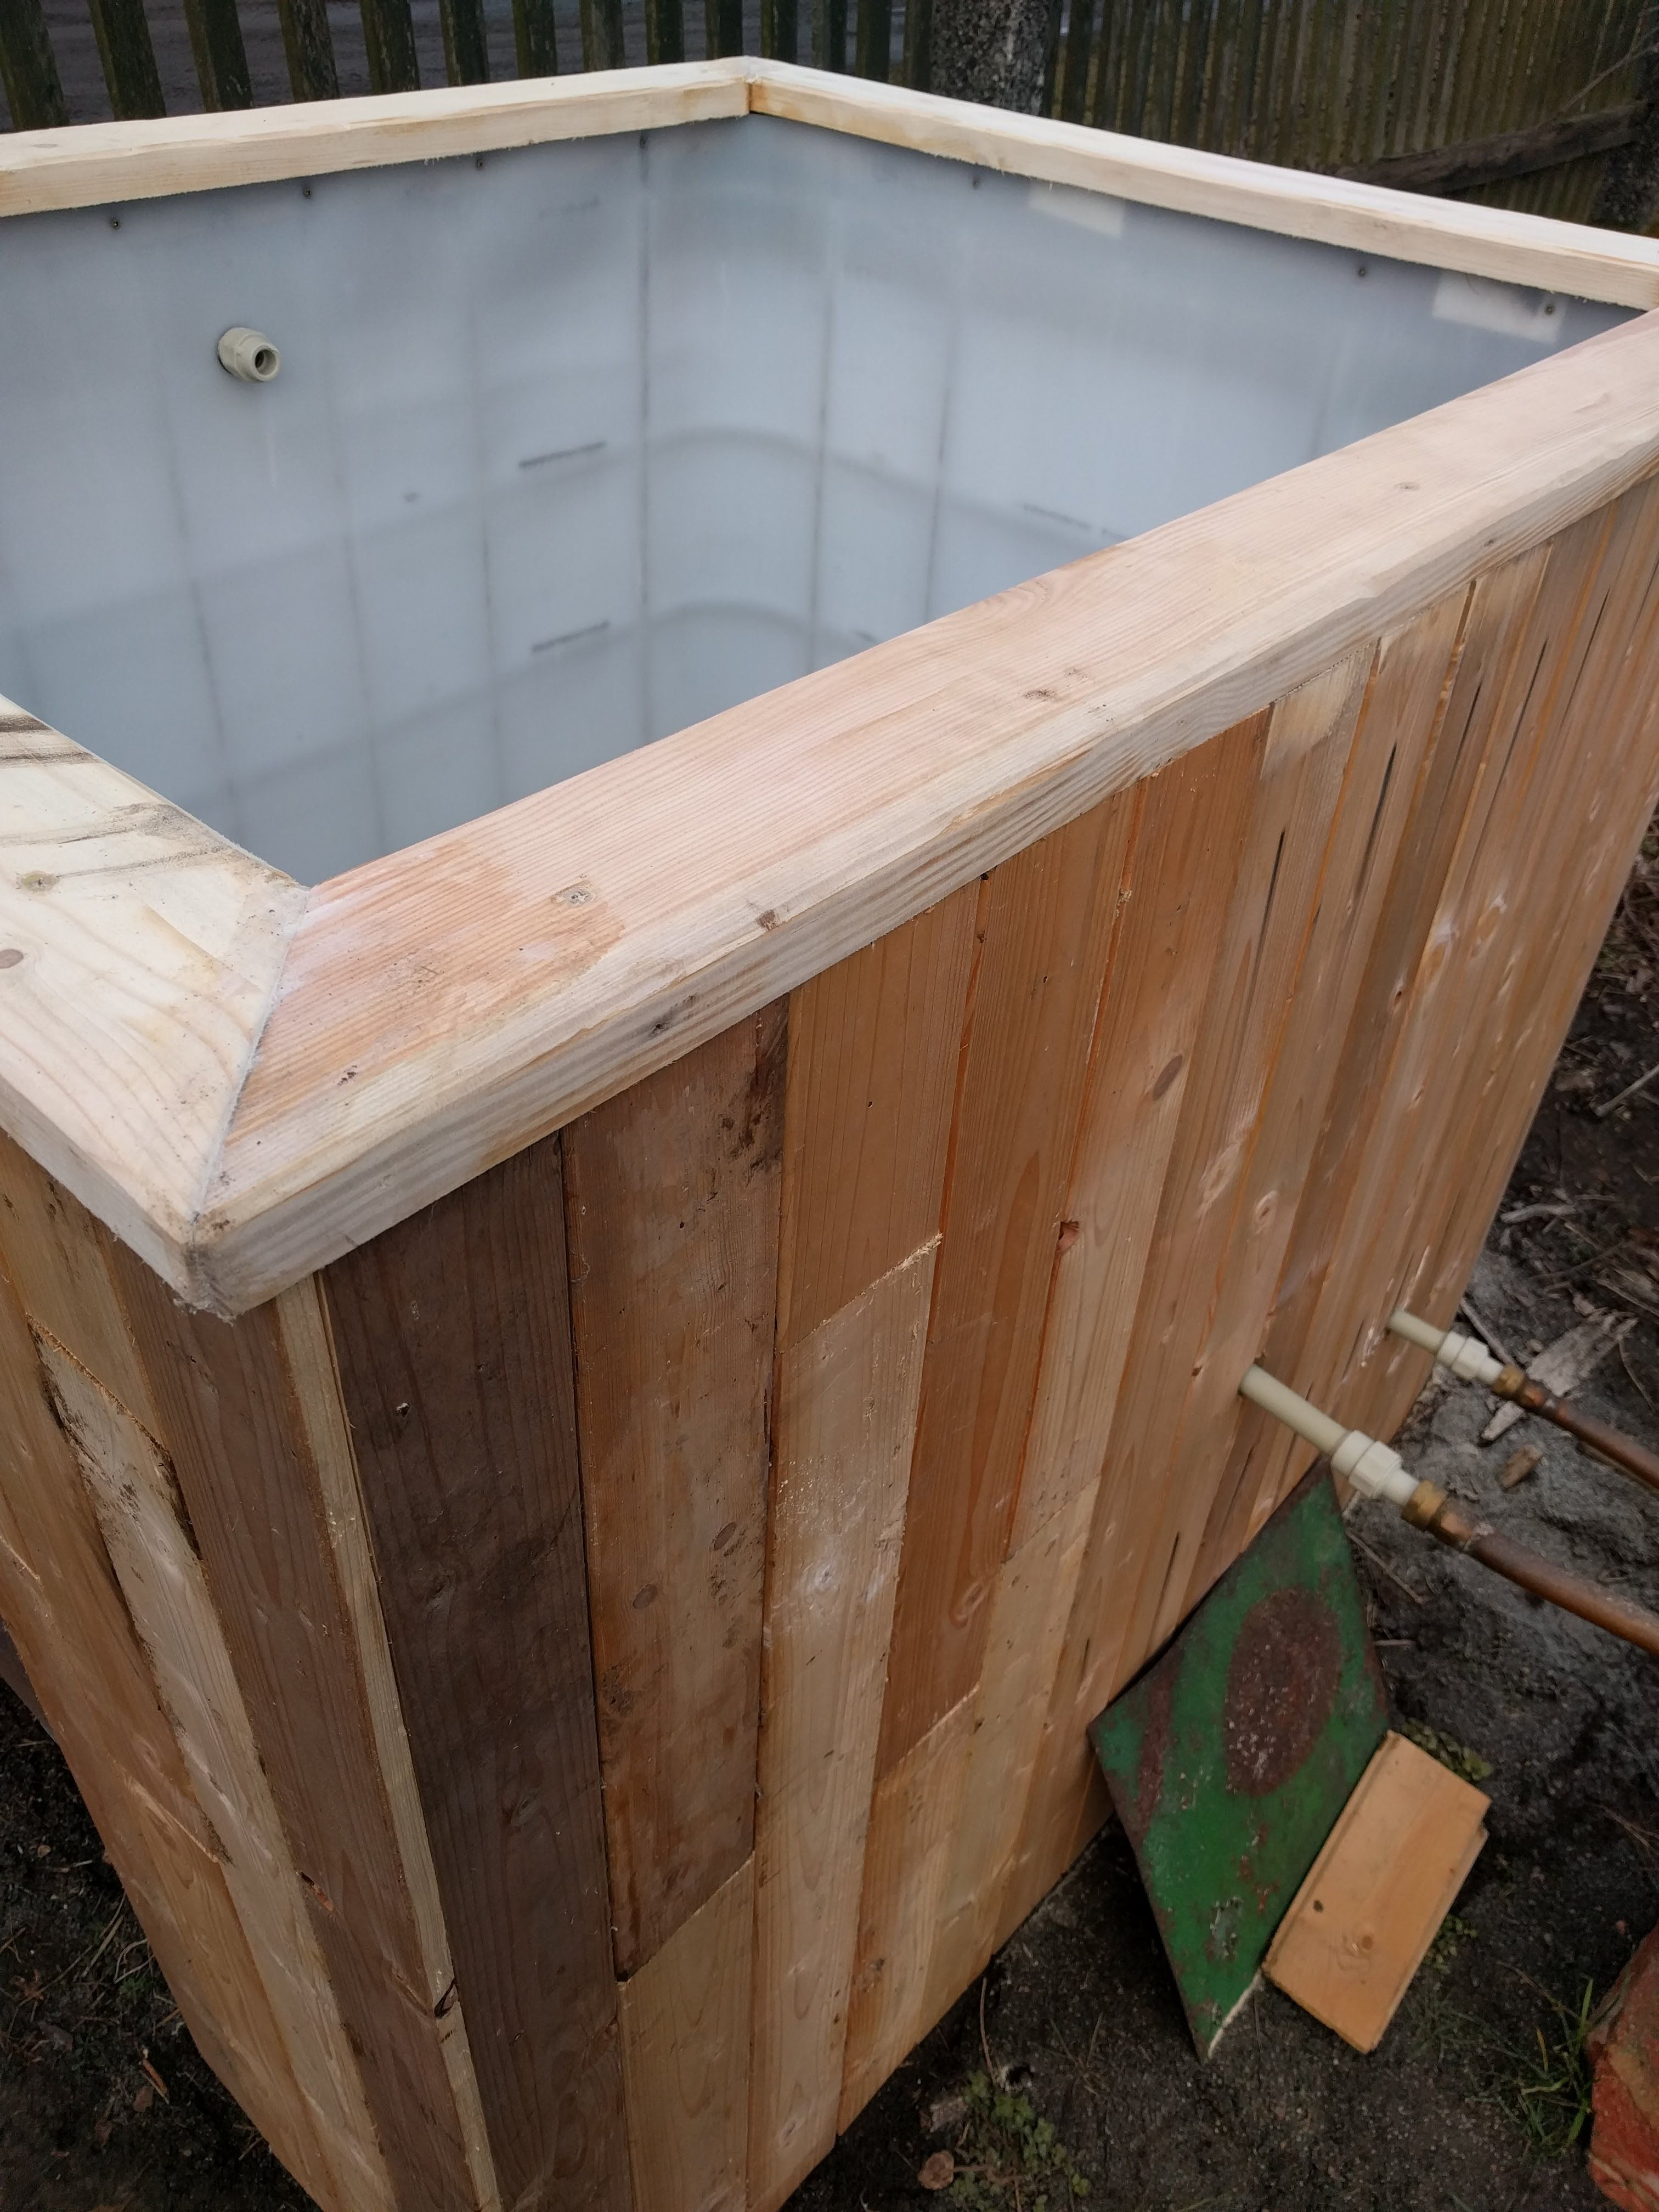 diy hot tub diy hot tub The Effective Pictures We Offer